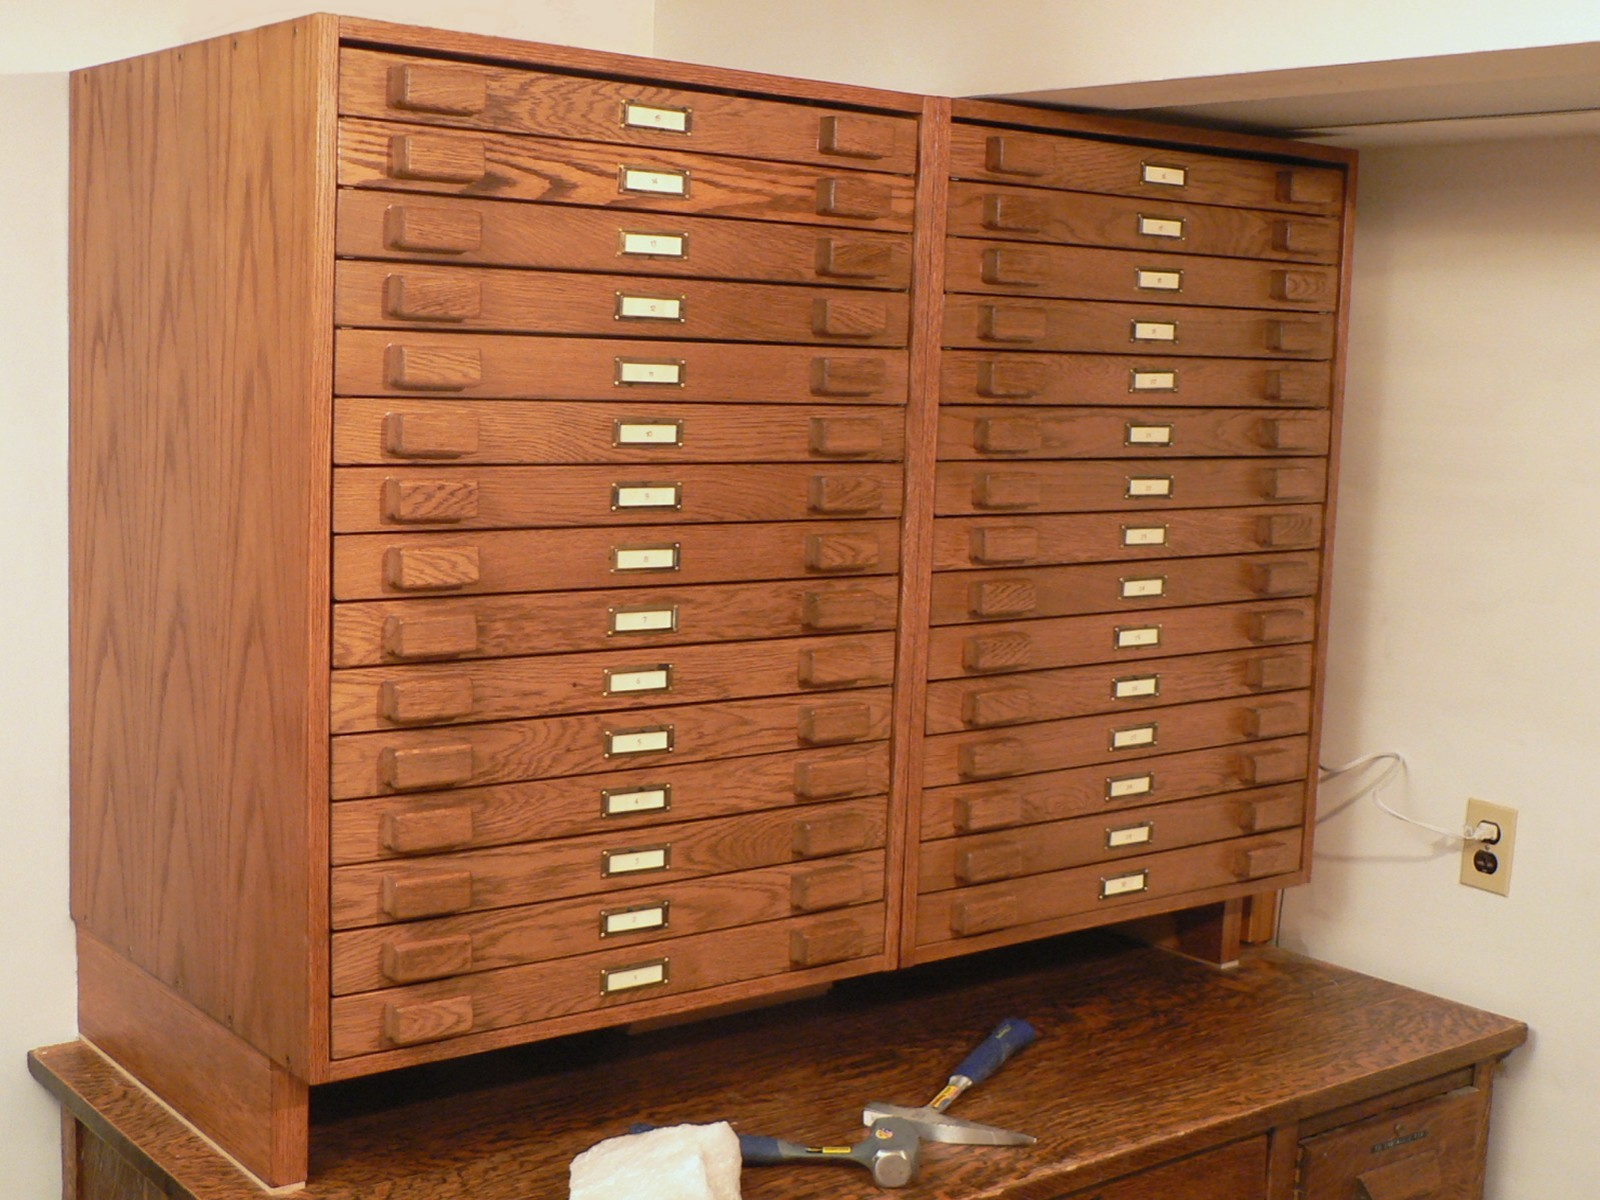 High Quality The Two Identical Cabinets, Each Housing 15 Drawers, Are Mounted On A  Pedestal On An Old Oak Desk.